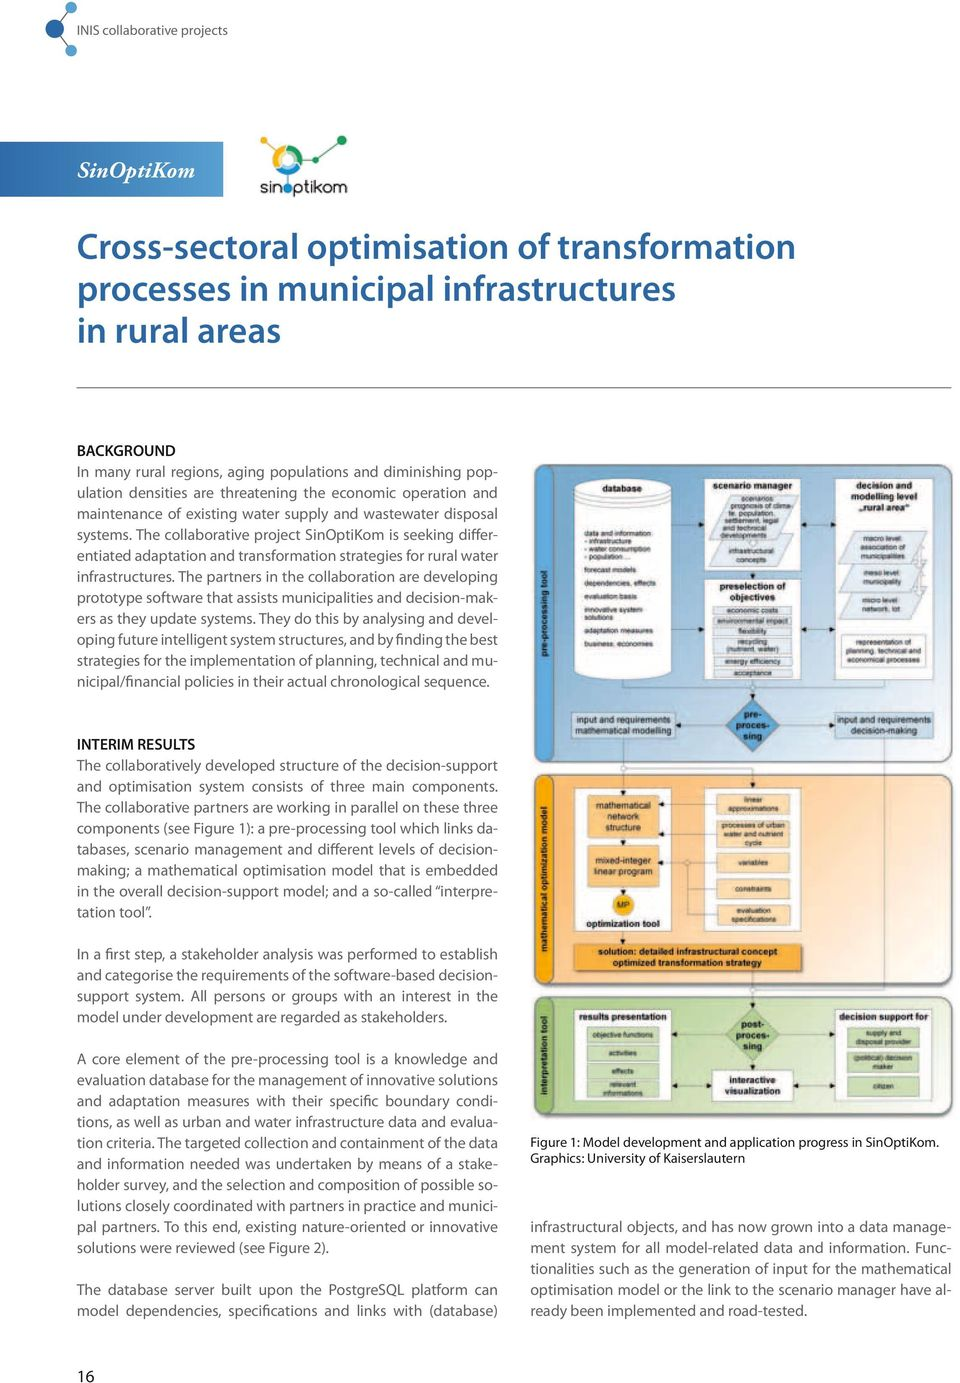 The collaborative project SinOptiKom is seeking differentiated adaptation and transformation strategies for rural water infrastructures.